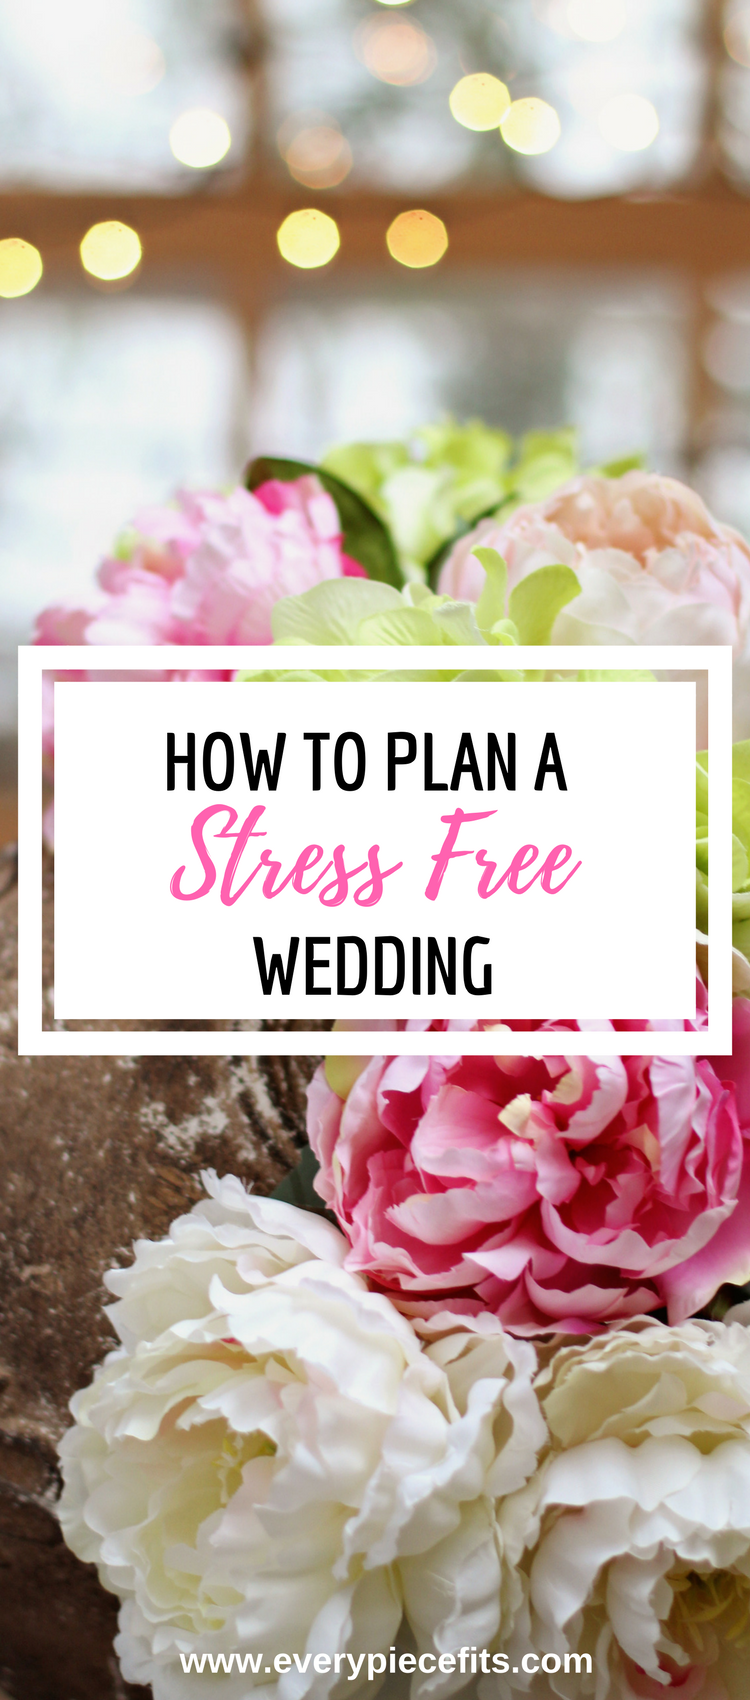 How to Plan a Stress Free Wedding!.png